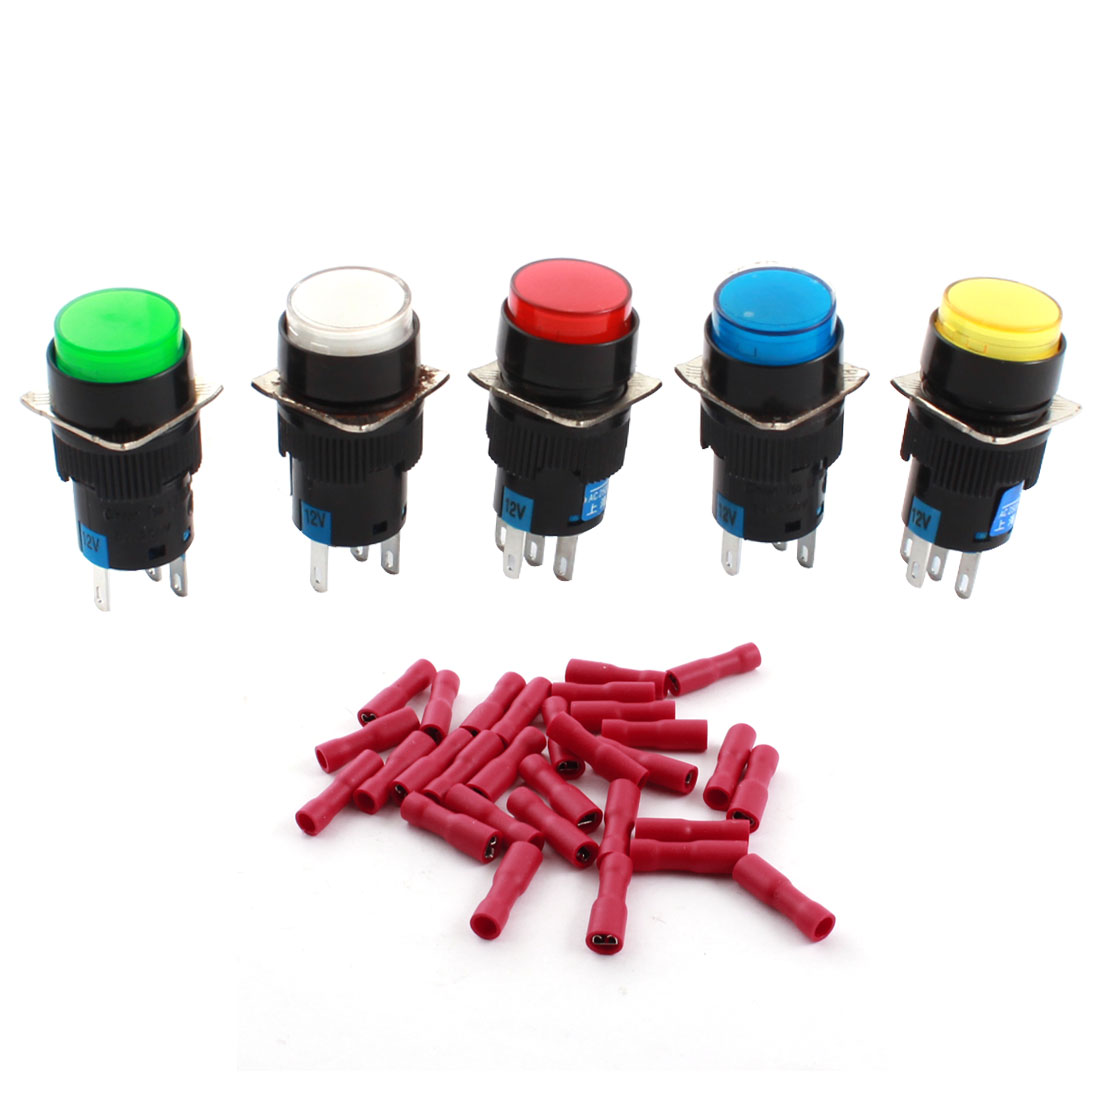 5pcs DC 12V Light SPDT 5 Pin Latching Round Push Button Switch + Spade Terminal